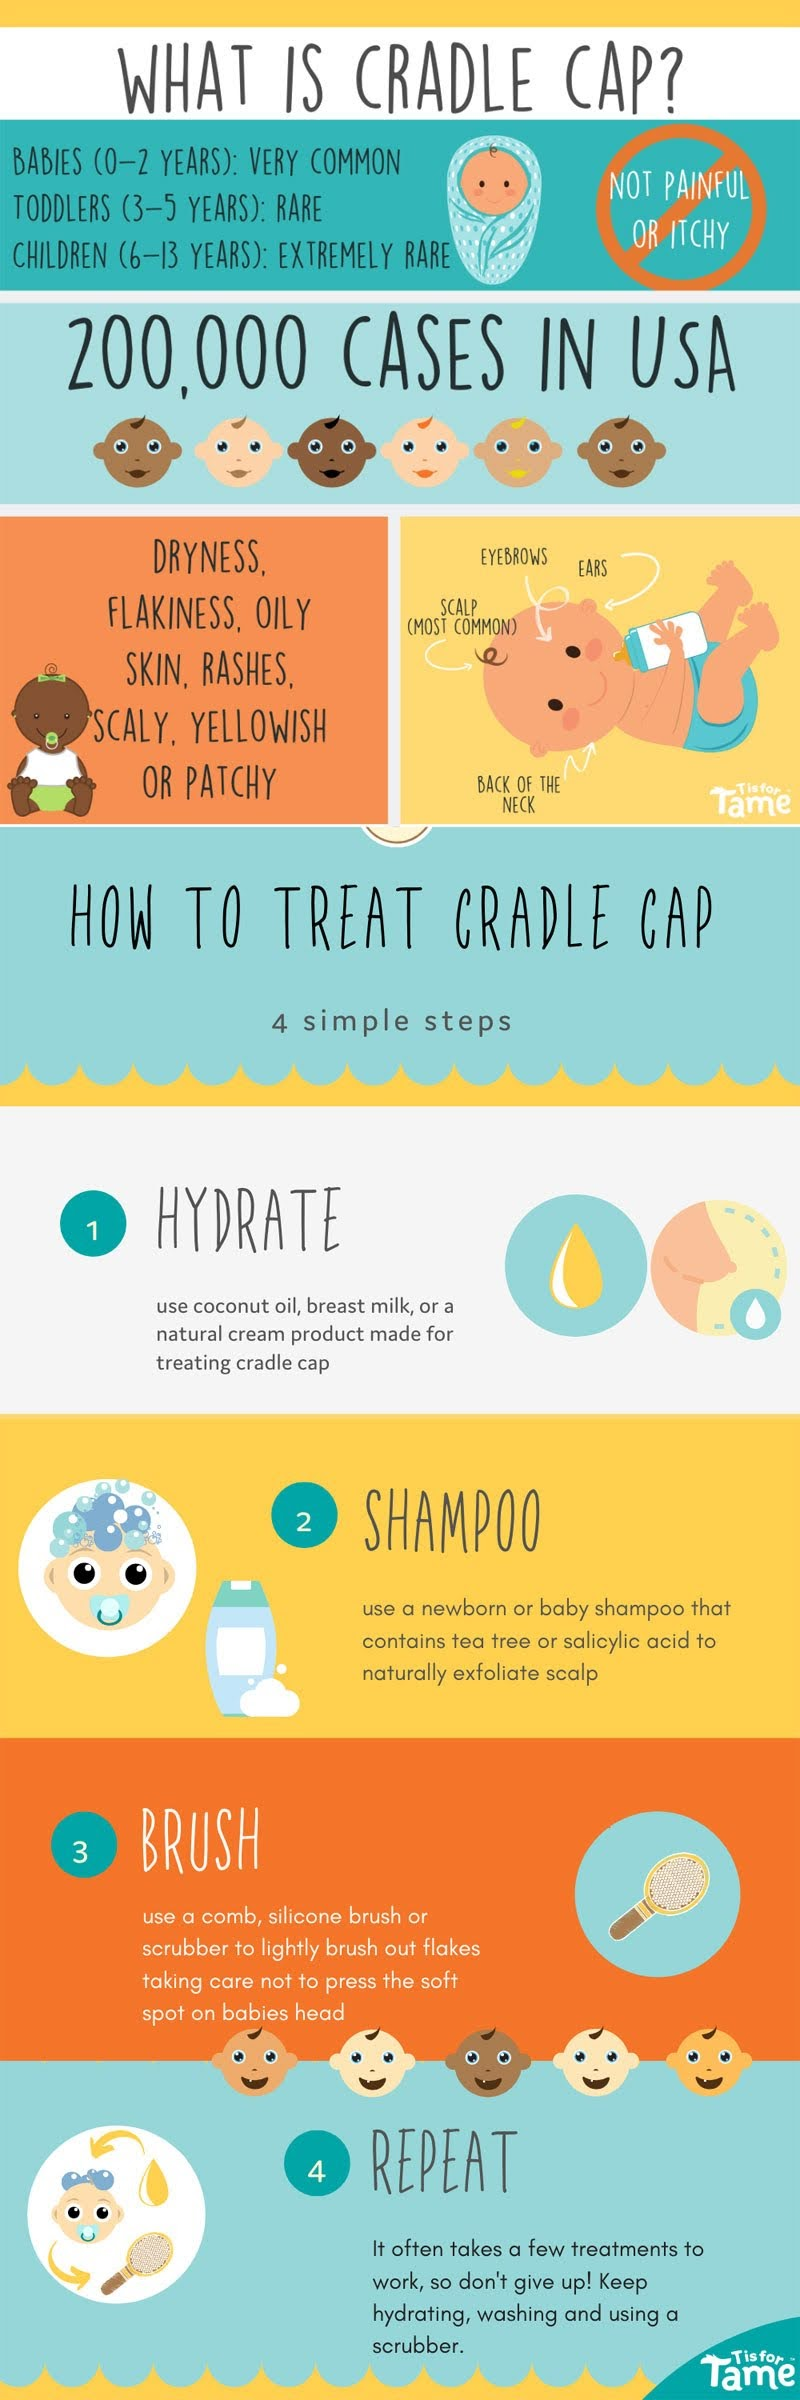 What is Cradle Cap? #infographic